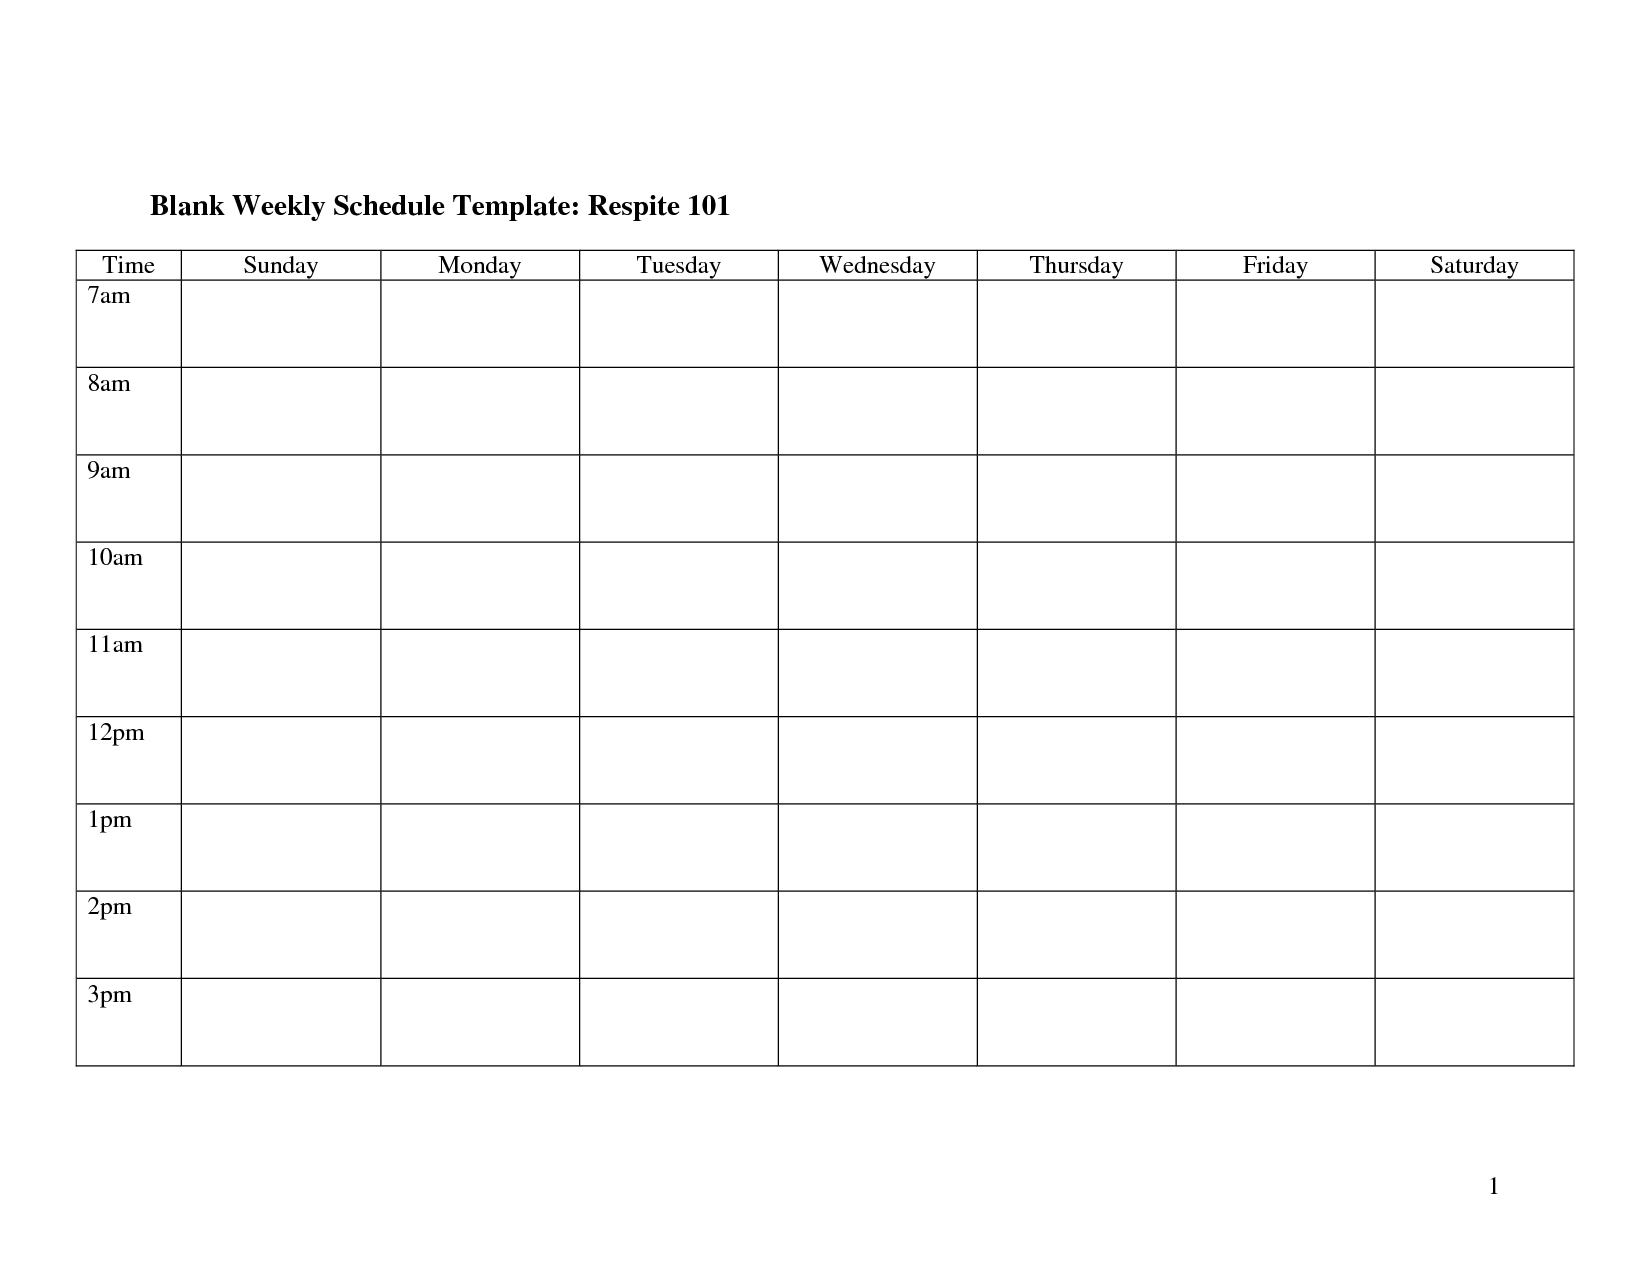 Weekly Schedule Monday Through Friday | Template Calendar Printable for Monday Through Friday Blank Schedule Print Out